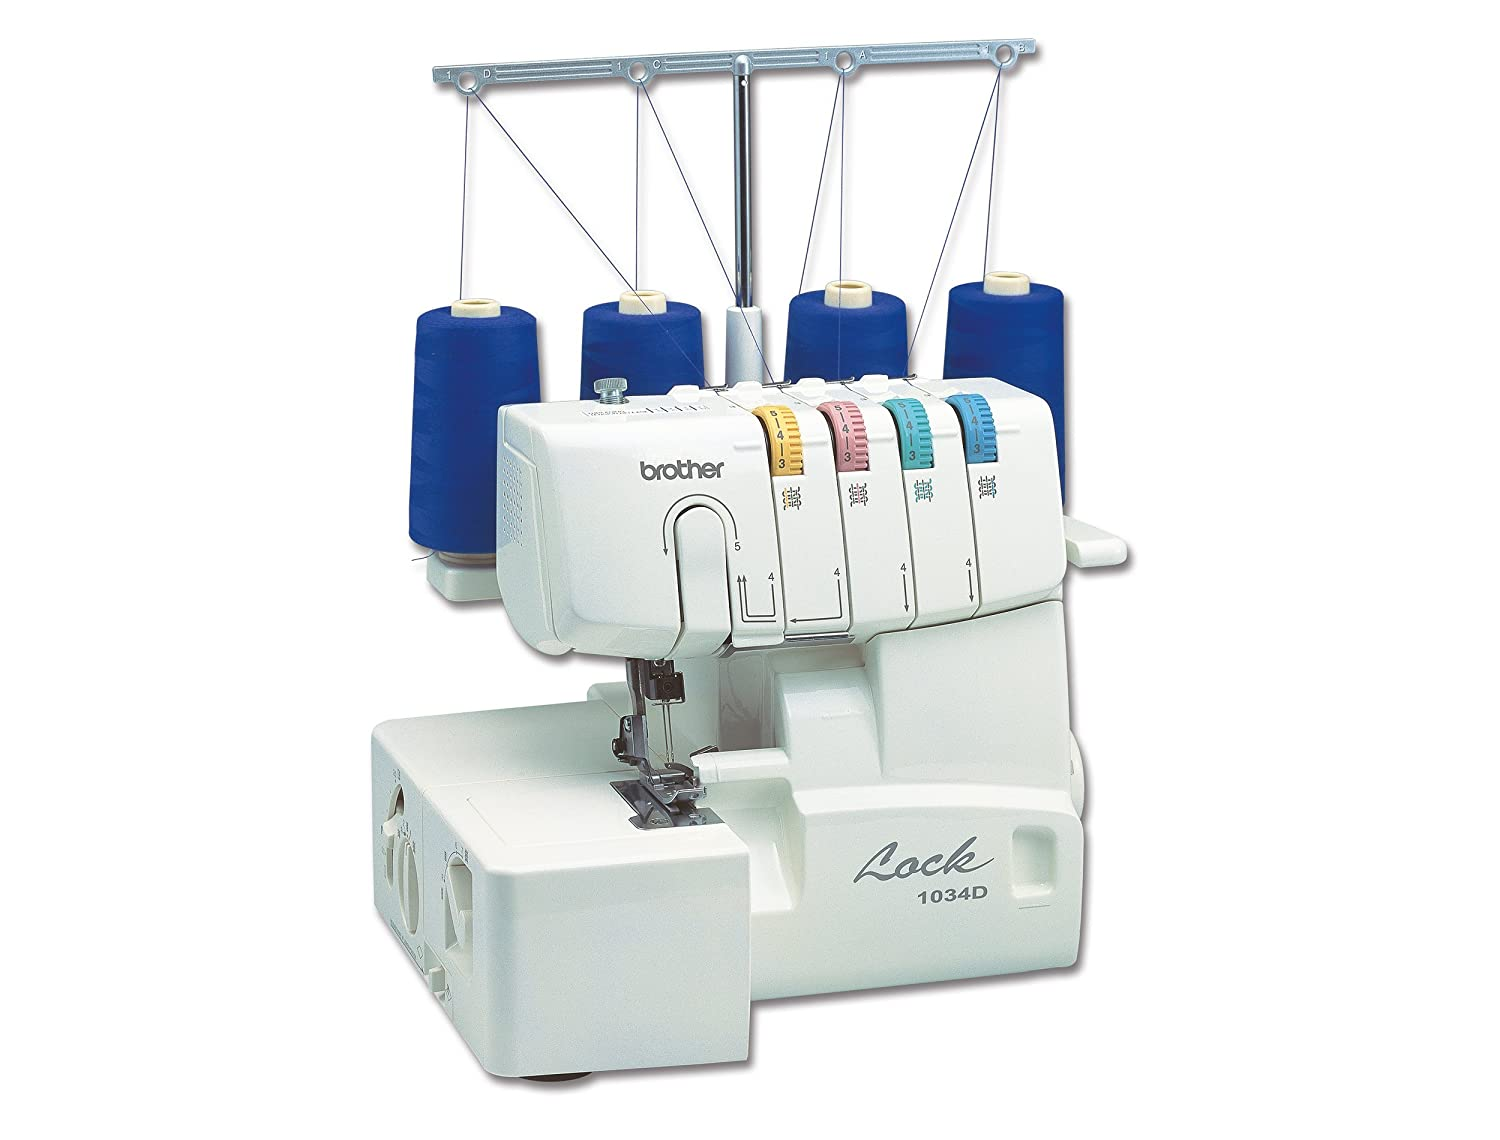 Top 6 Best Serger Sewing Machine (2020 Reviews & Buying Guide) 1